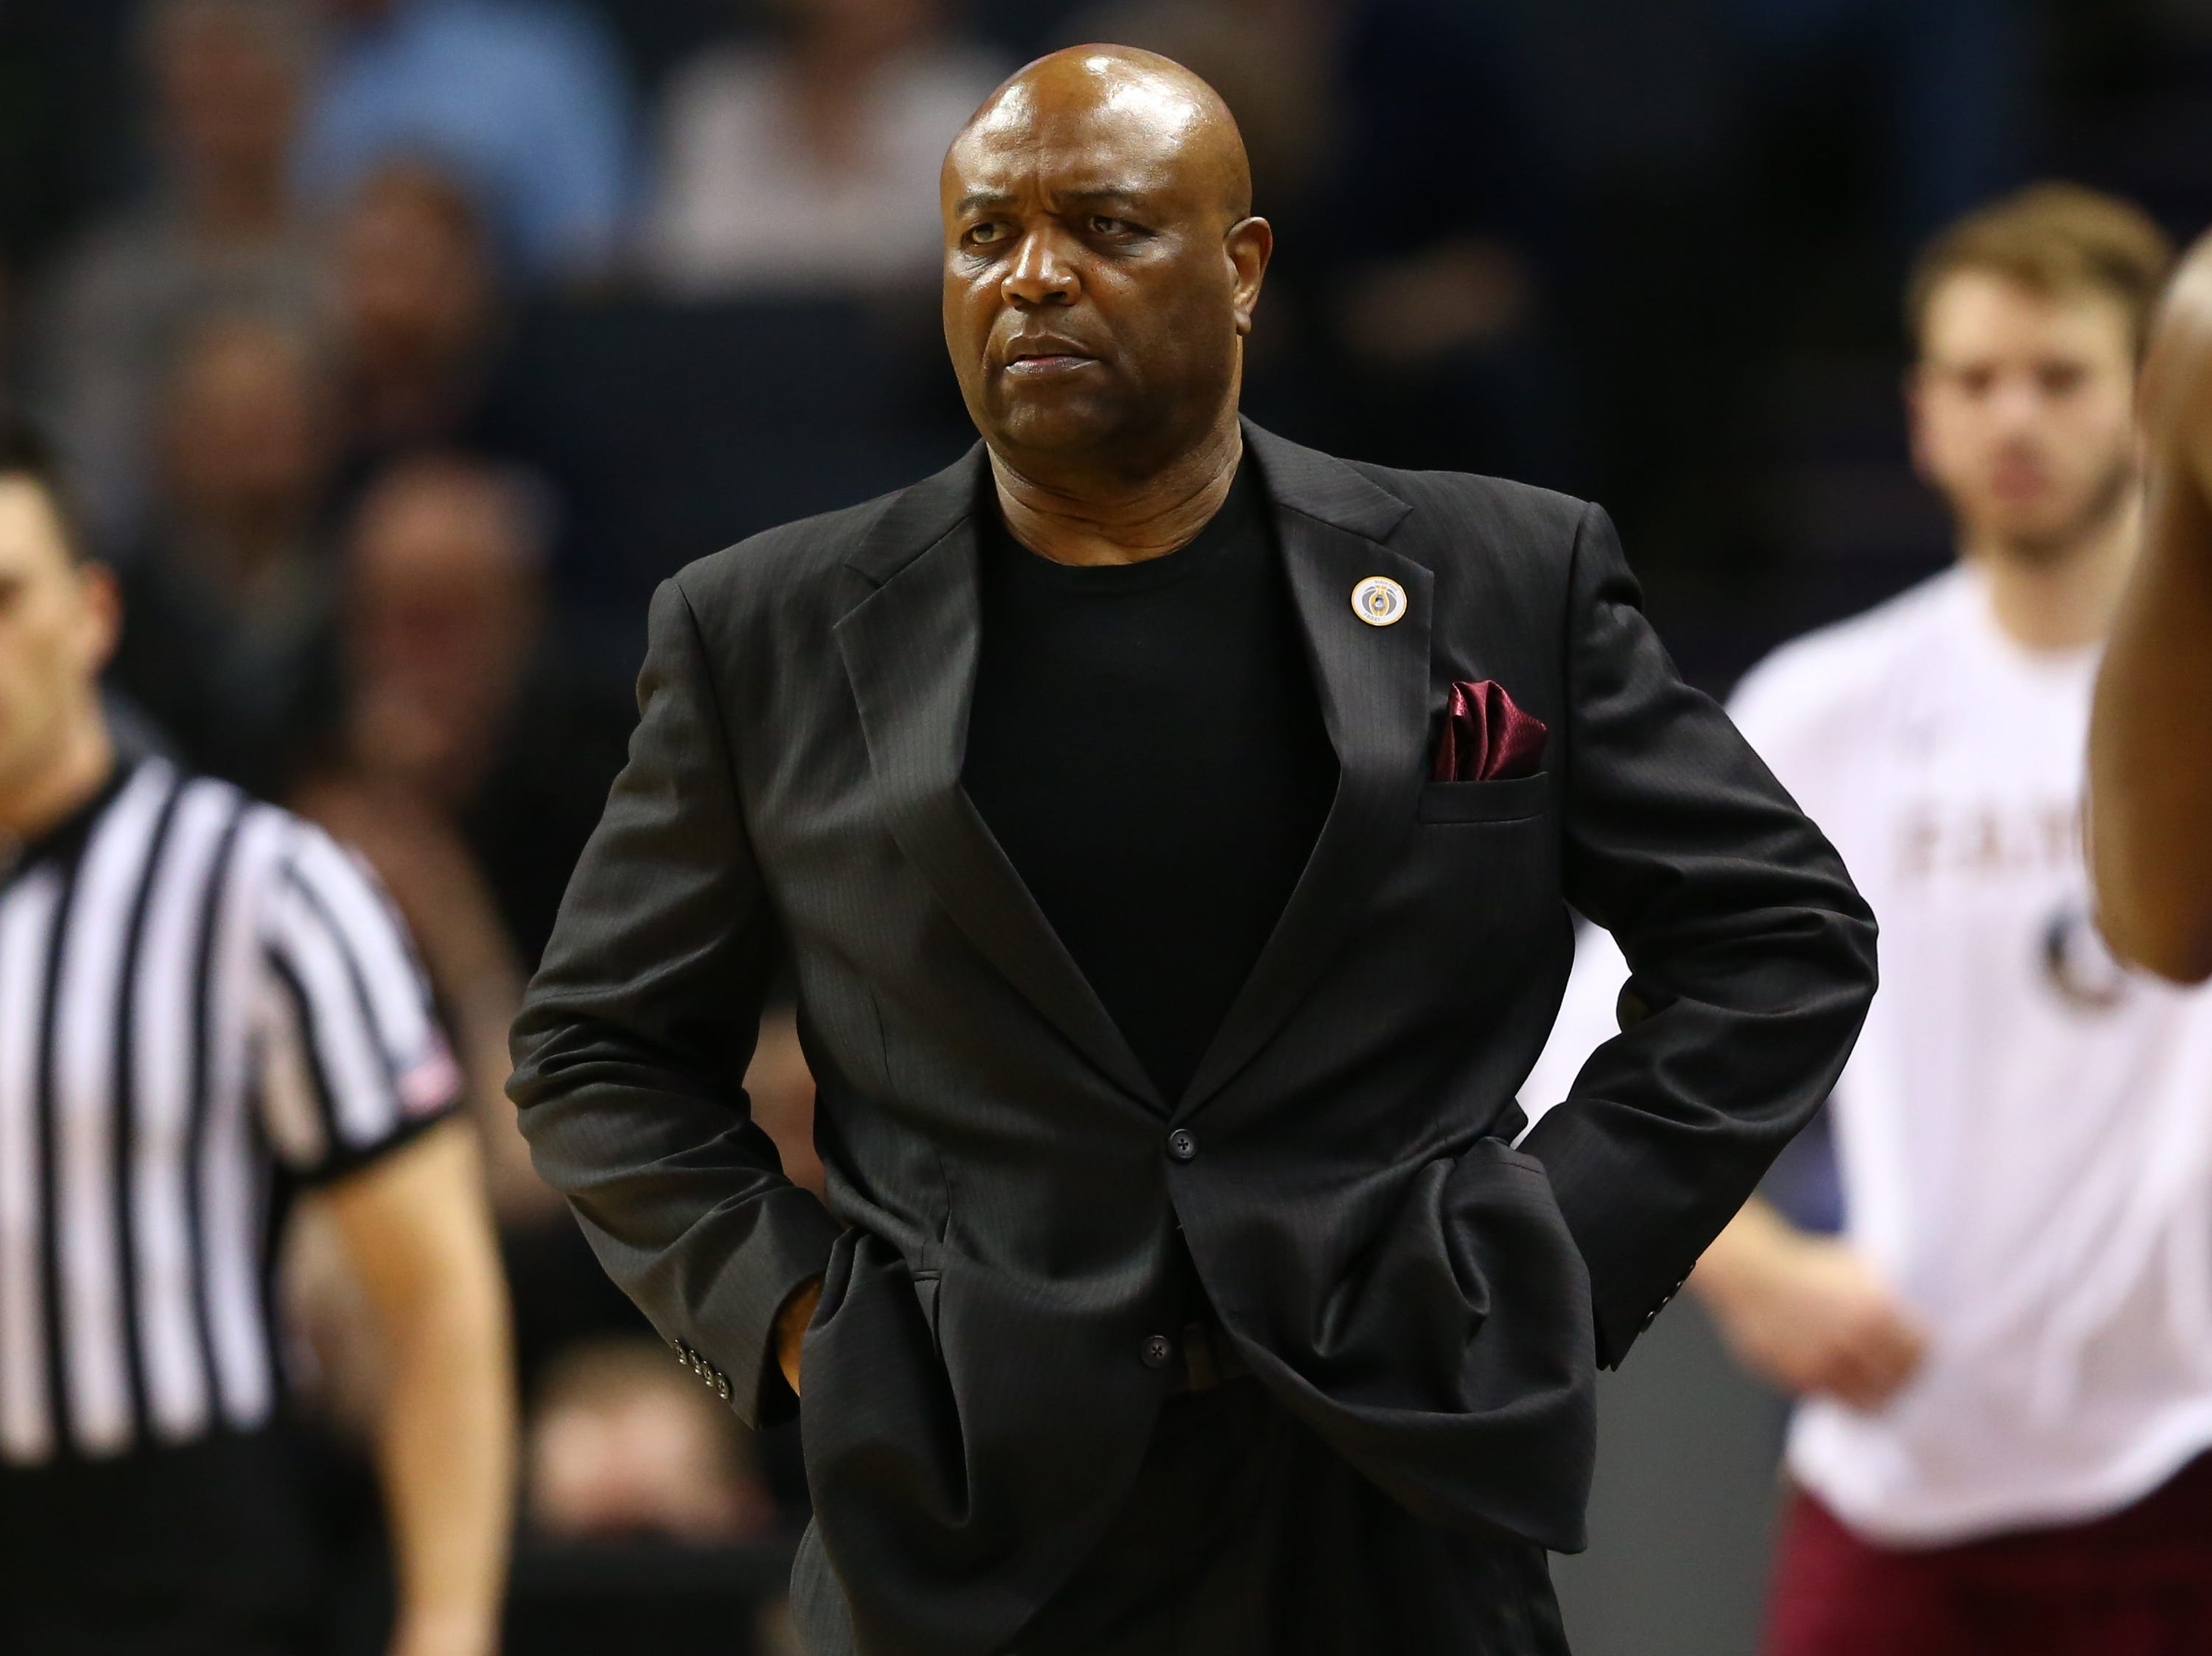 Mar 15, 2019; Charlotte, NC, USA; Florida State Seminoles head coach Leonard Hamilton looks on during the first half against the Virginia Cavaliers in the ACC conference tournament at Spectrum Center. Mandatory Credit: Jeremy Brevard-USA TODAY Sports